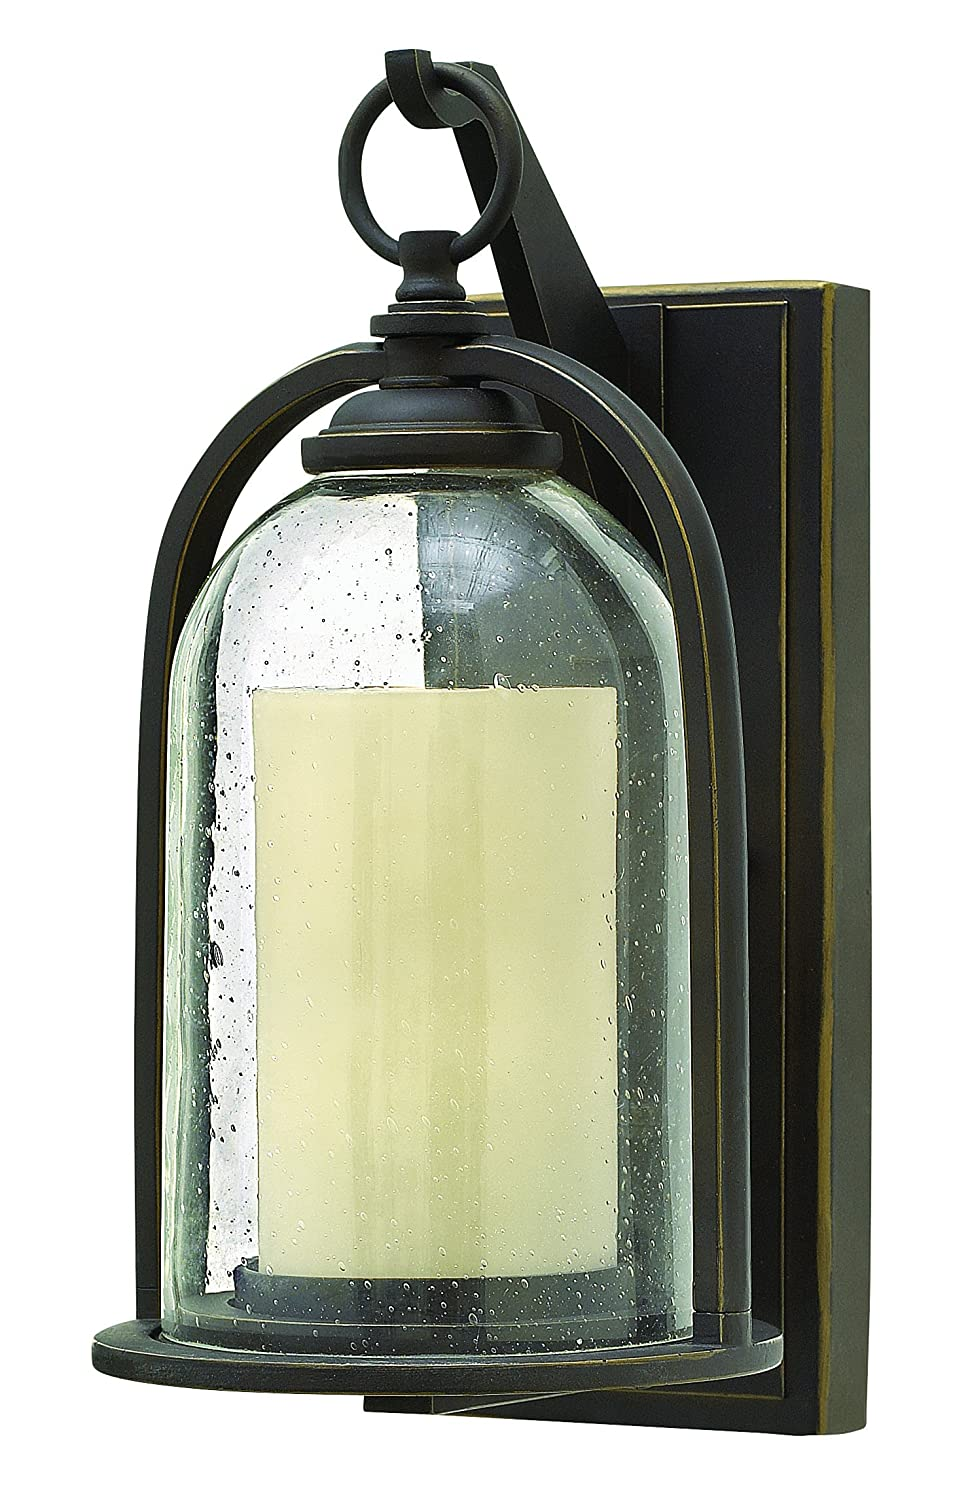 Hinkley 2614oz americana one light wall mount from quincy hinkley 2614oz americana one light wall mount from quincy collection in bronzedarkfinish amazon amipublicfo Gallery